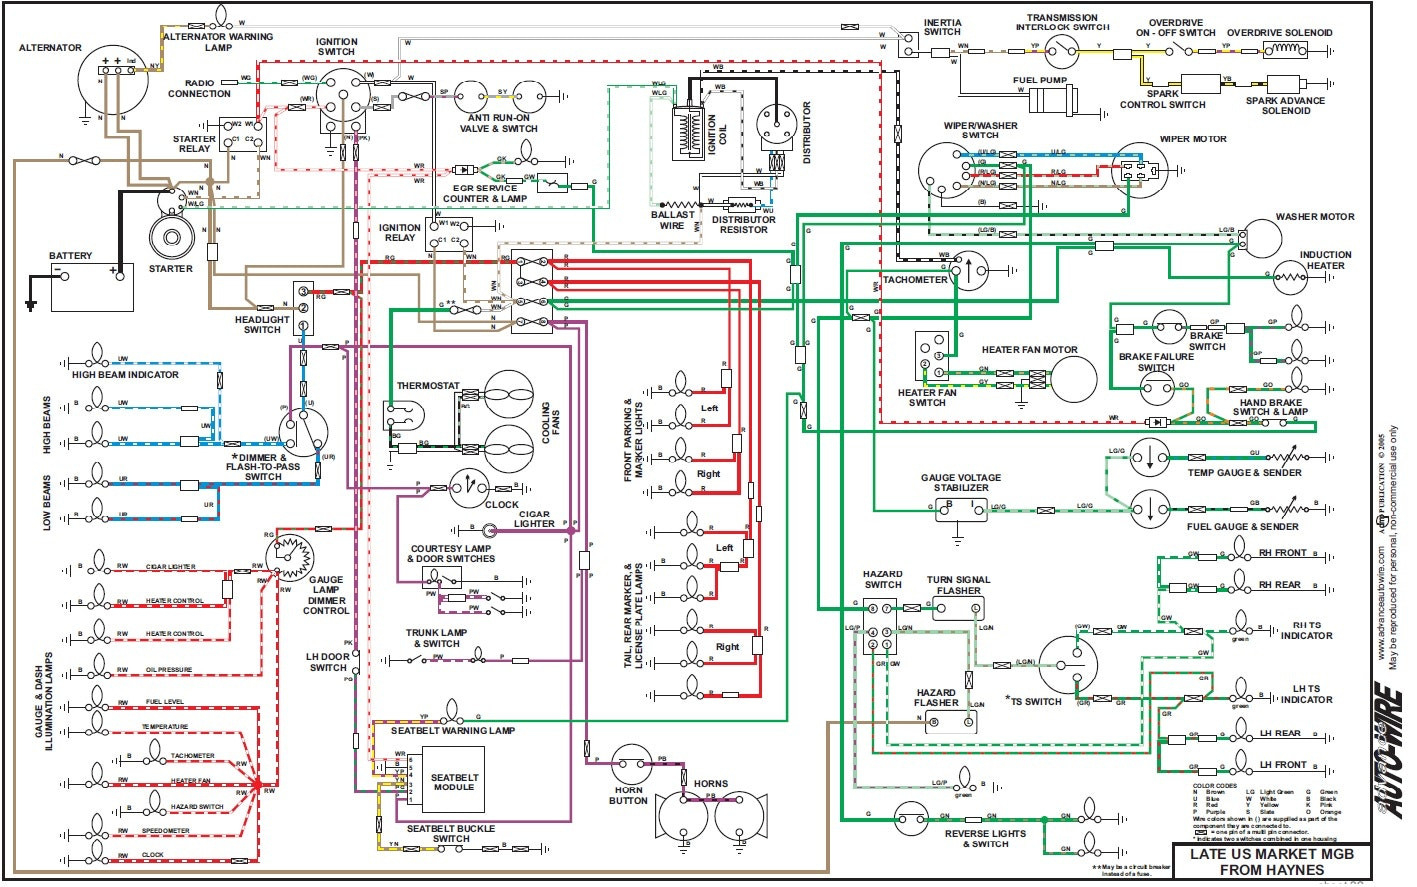 Diagram 1972 Mgb Wiring Diagram Schematic Full Version Hd Quality Diagram Schematic Mentalrewiringl Sacom It